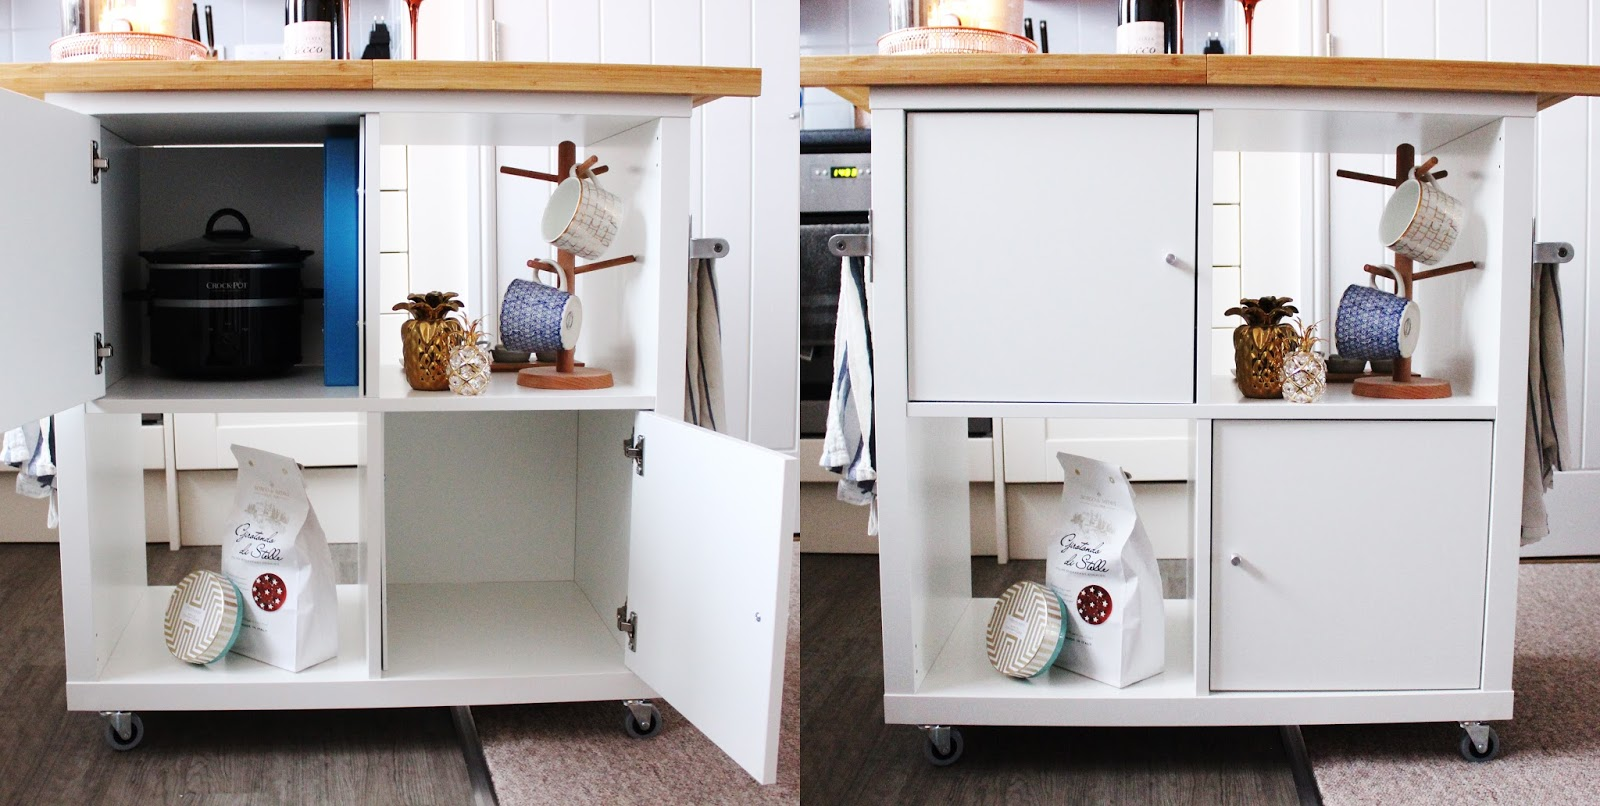 Simple Ikea Kitchen Island Hack By Jen Lou Meredith In Ideas